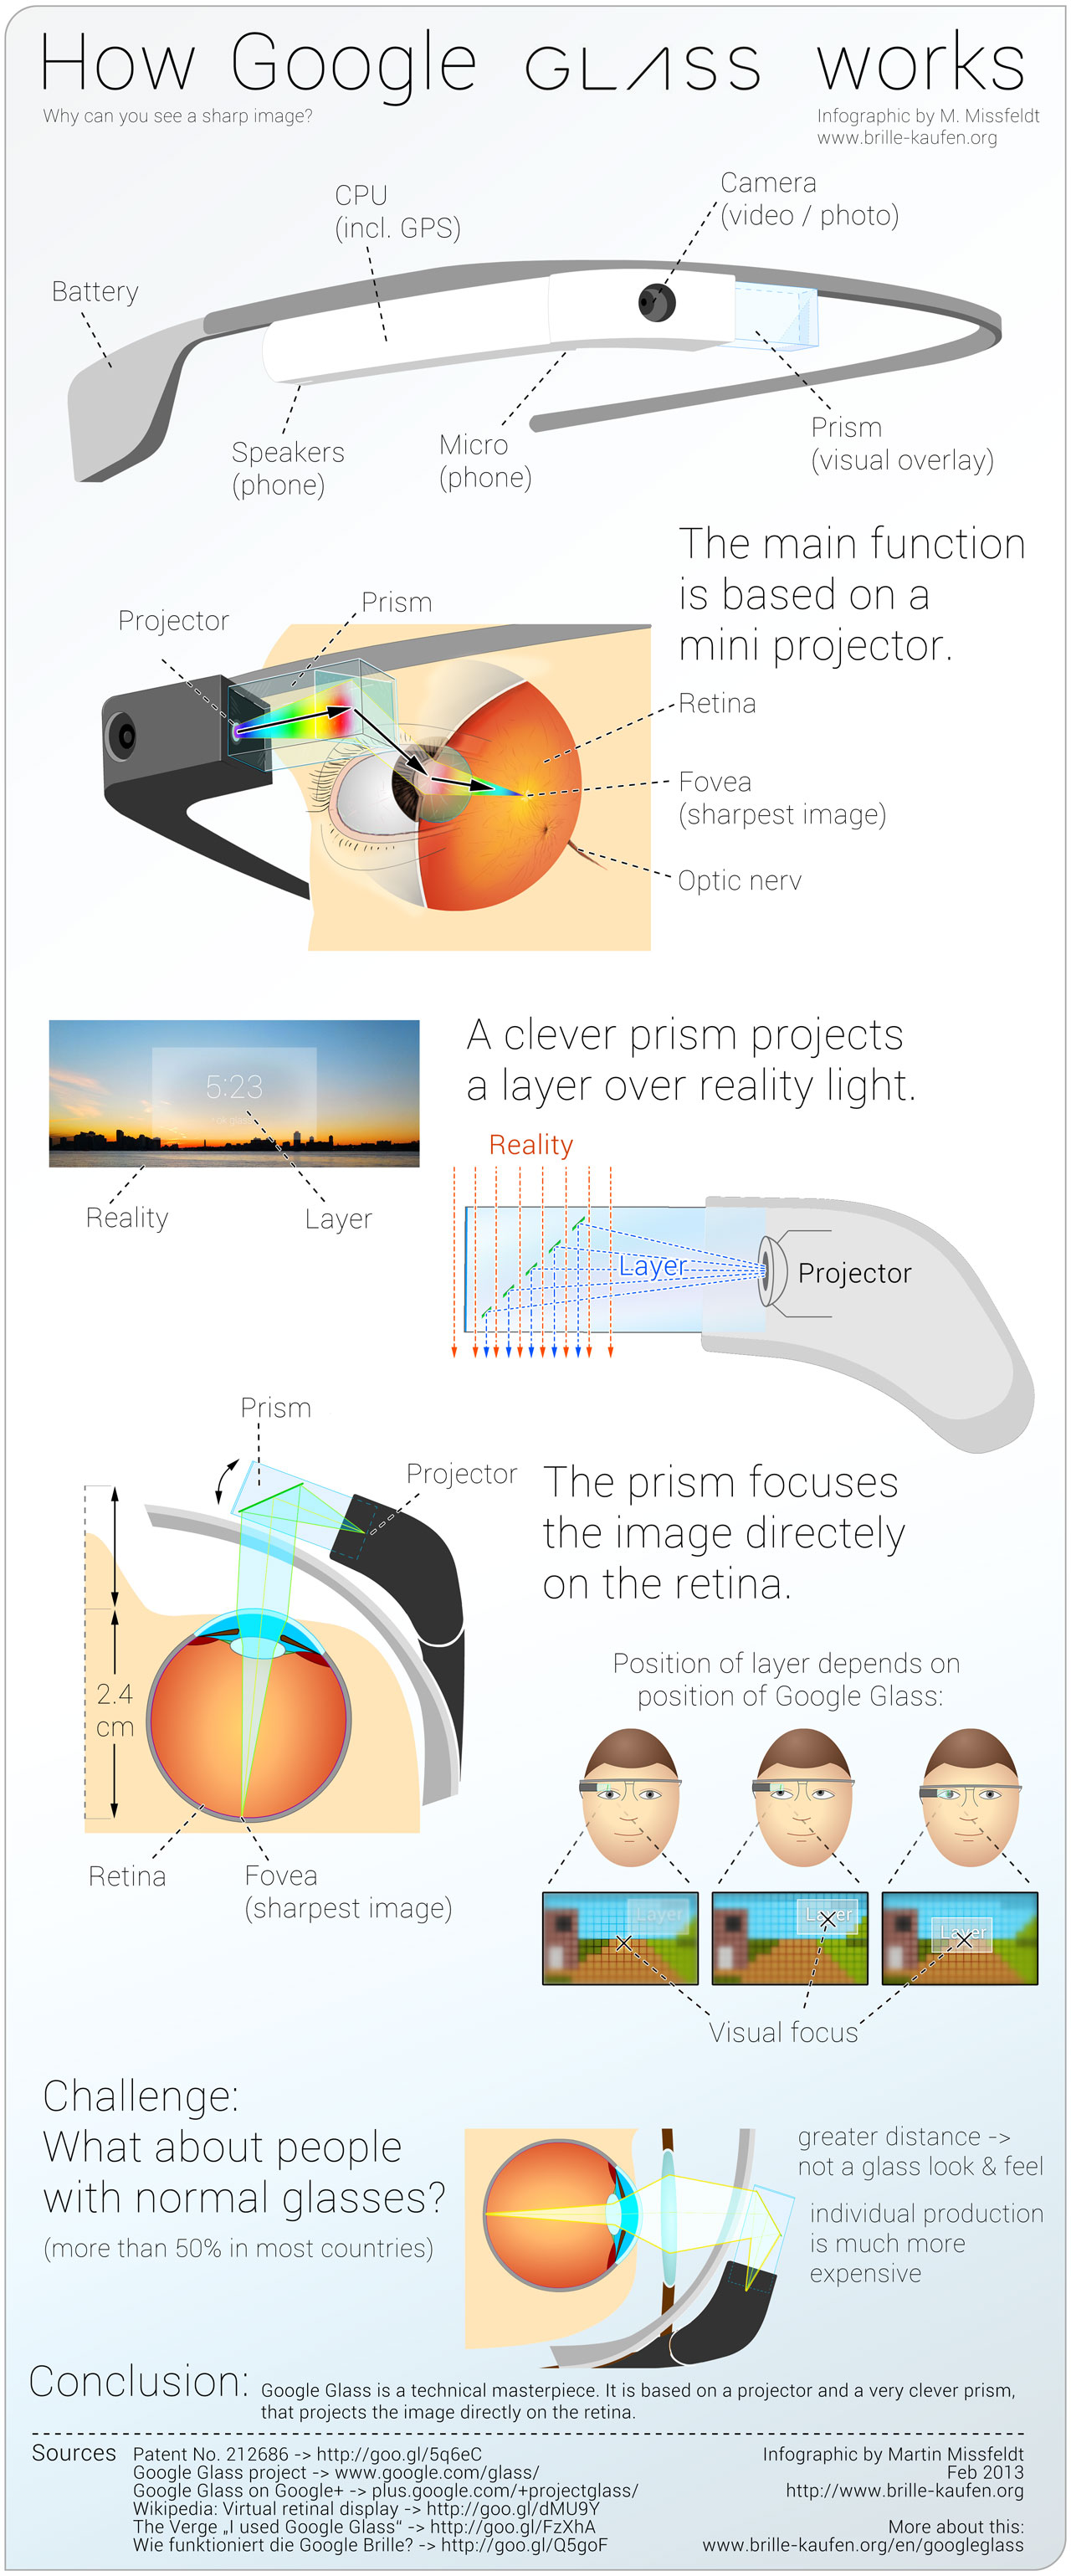 Comment fonctionne les Google Glass